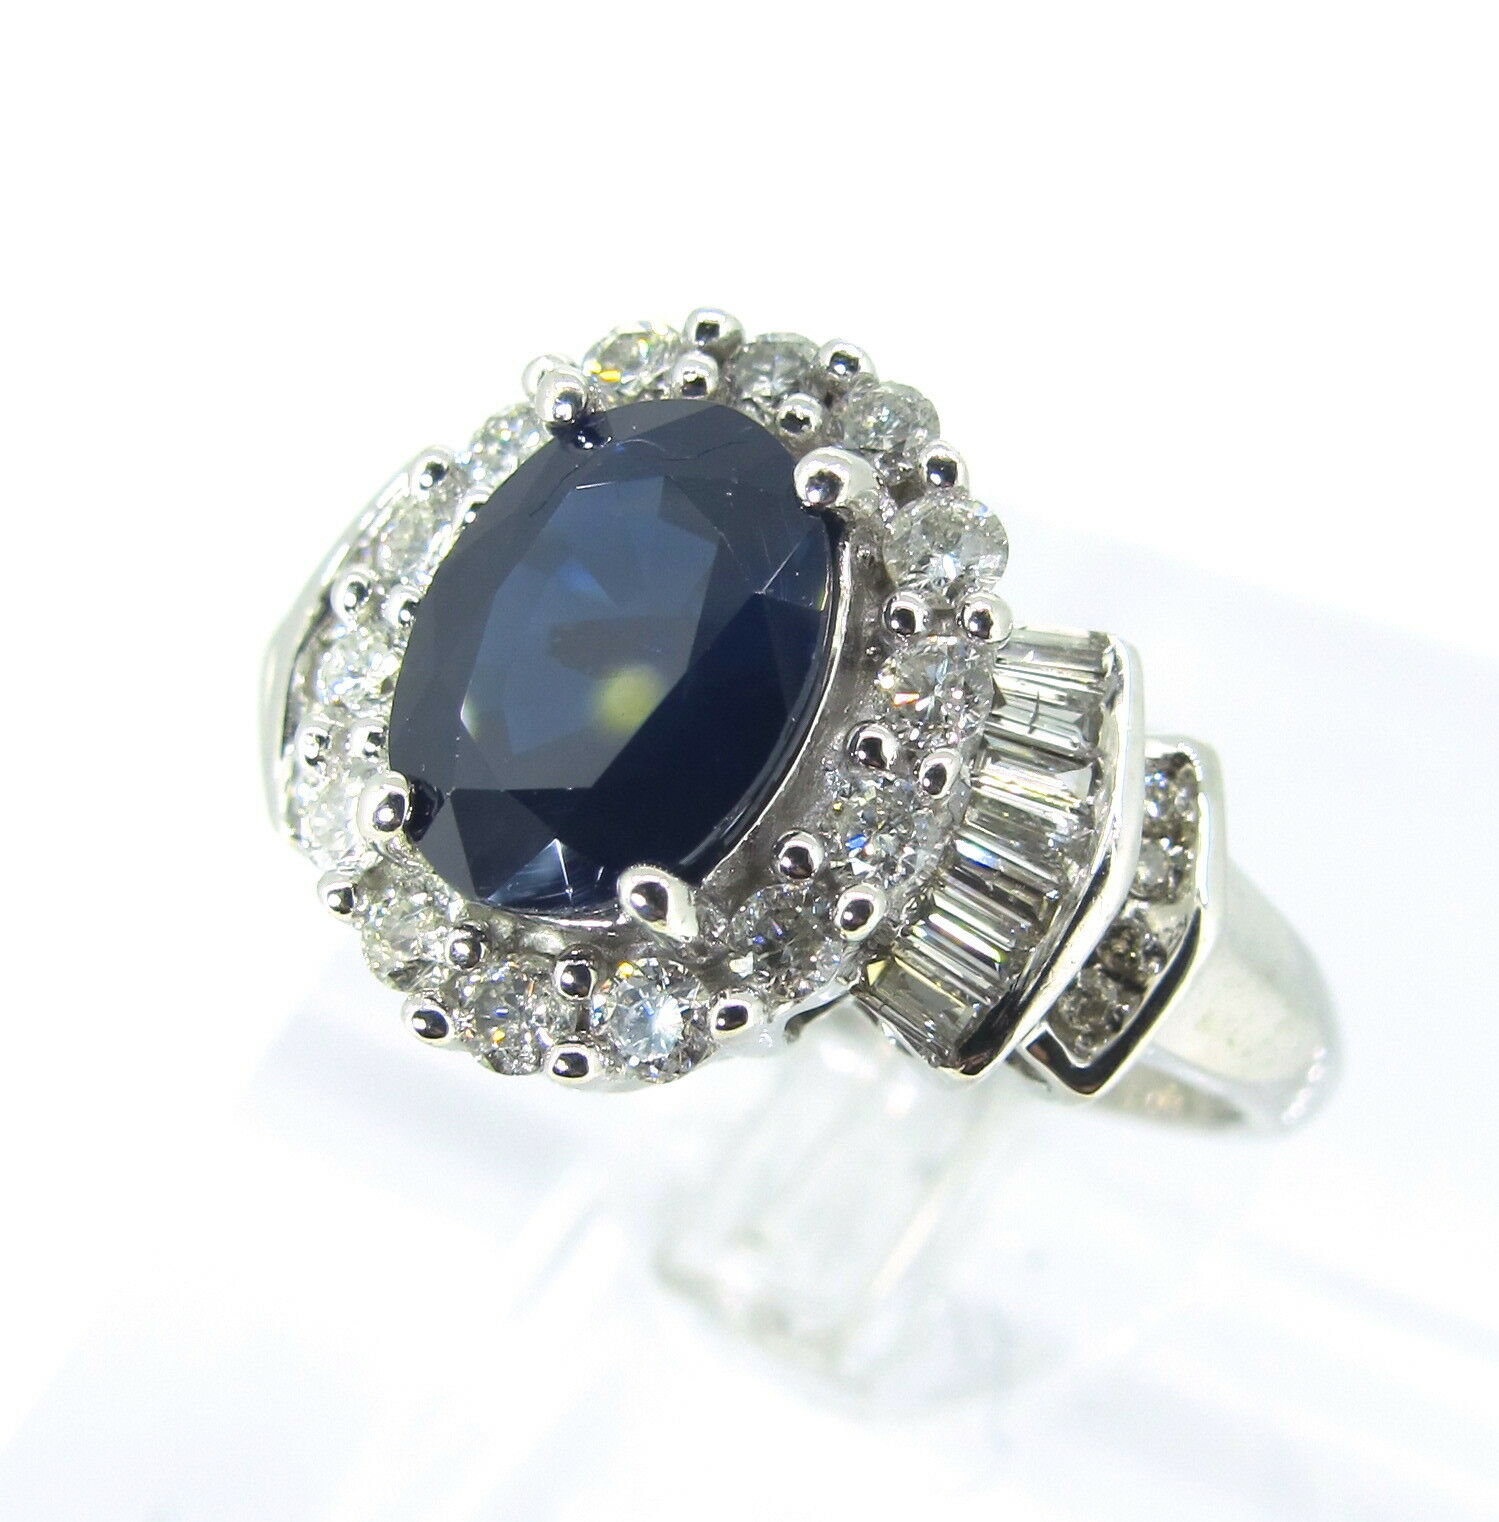 f29bb837e3bd7 59 gold White Natural SAPPHIRE ct 2 ct 14k Ring Baguette & Round ...